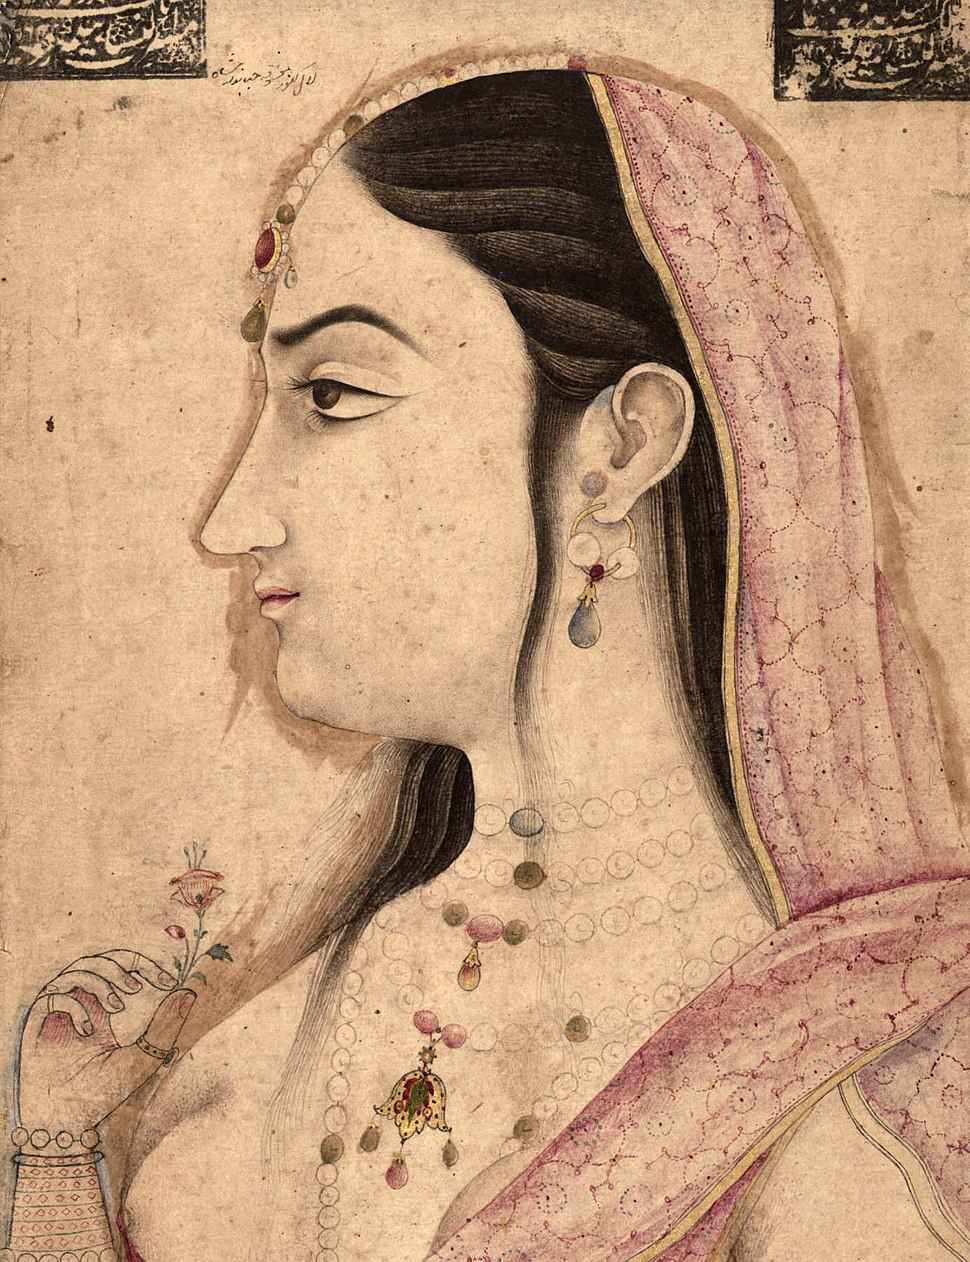 Lal Kunwar, by Indian School of the 18th century